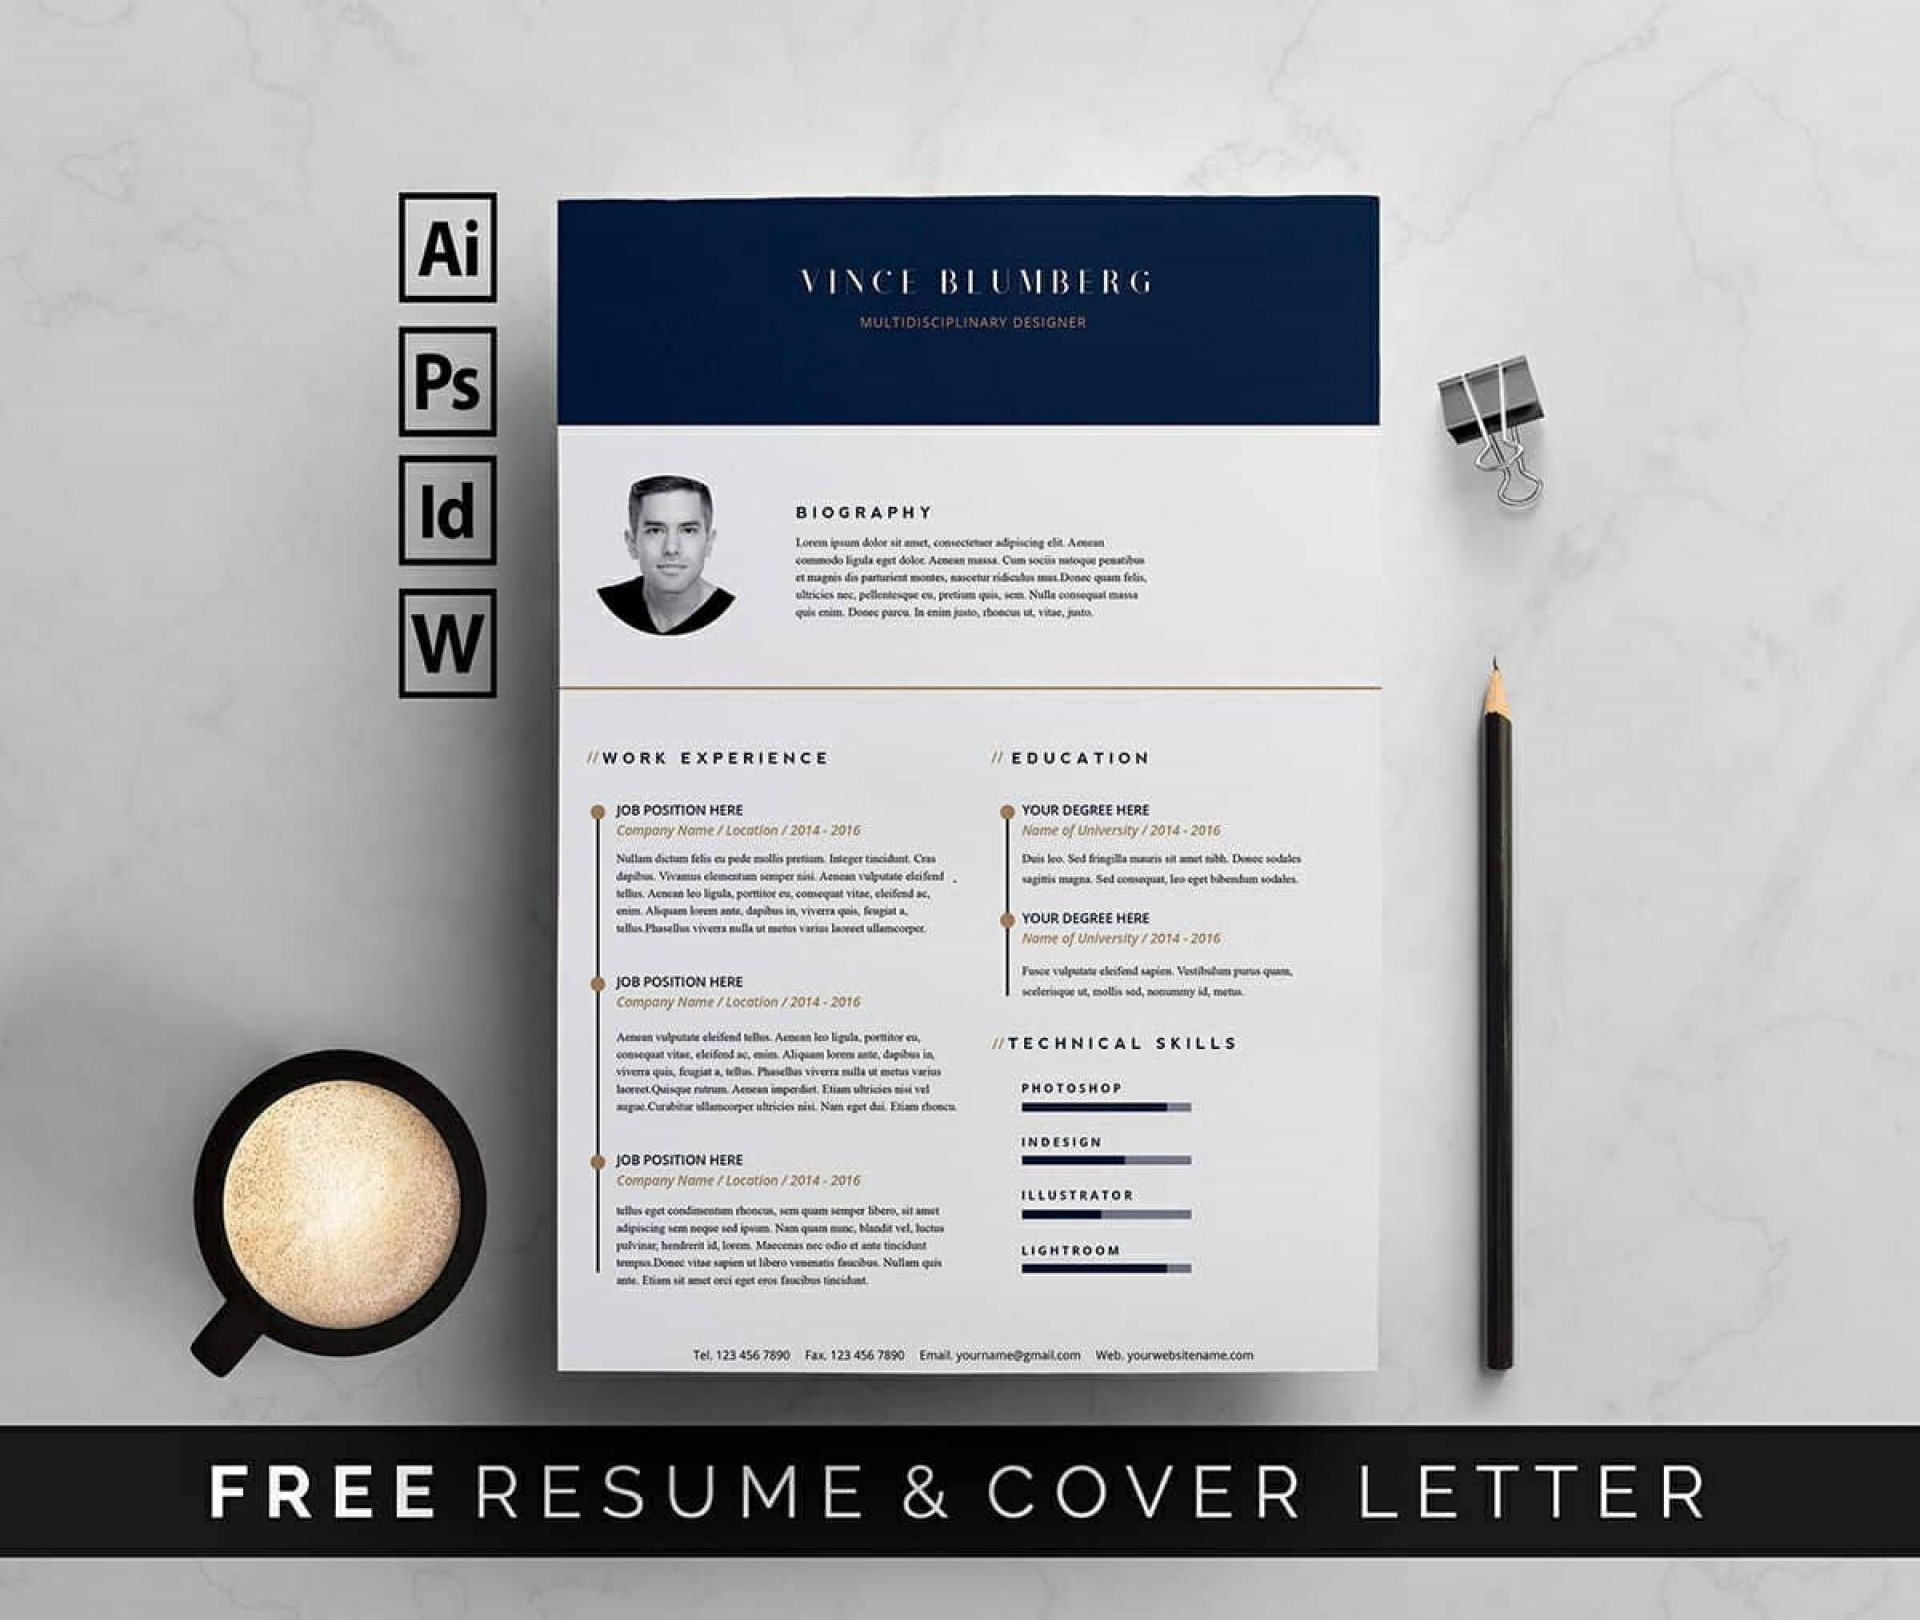 010 Astounding Word Resume Template Free Sample  Fresher Format Download 2020 M1920